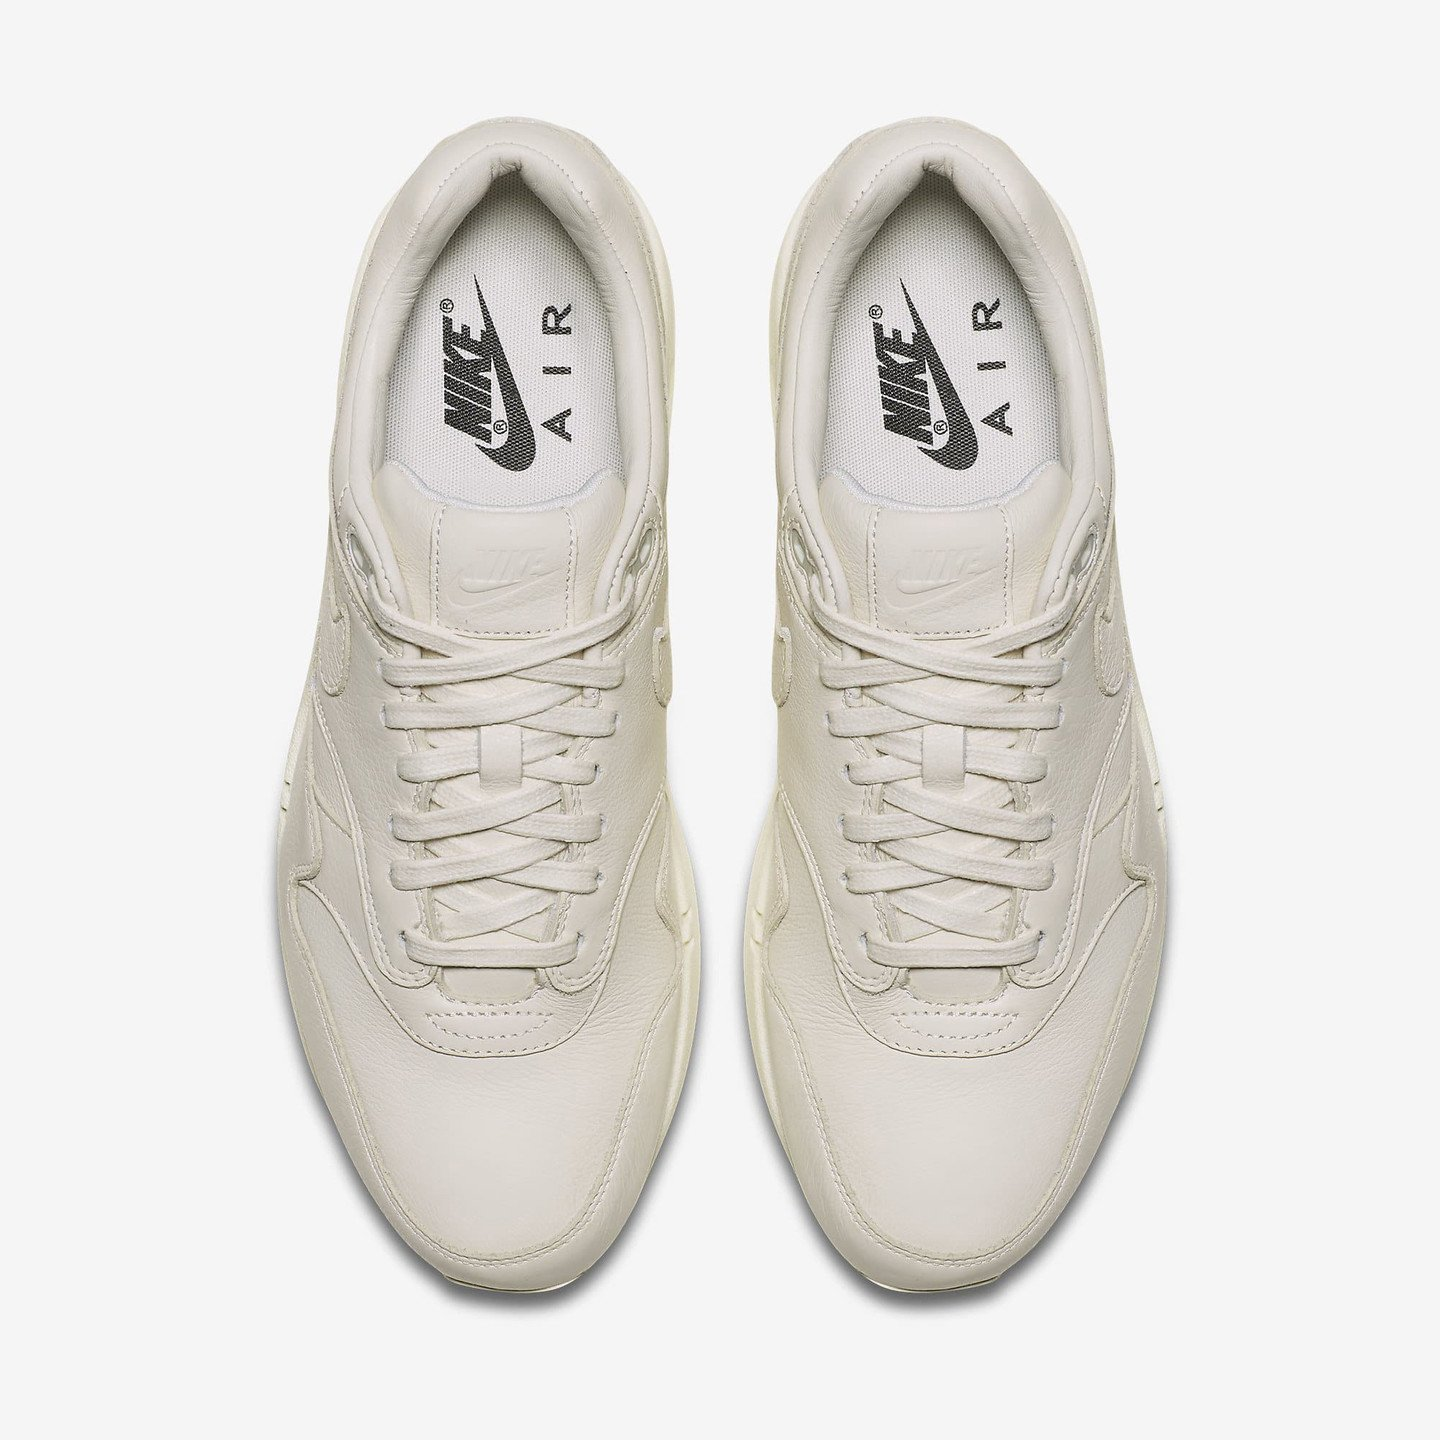 Nike Air Max 1 Pinnacle Sail / Sail 859554-101